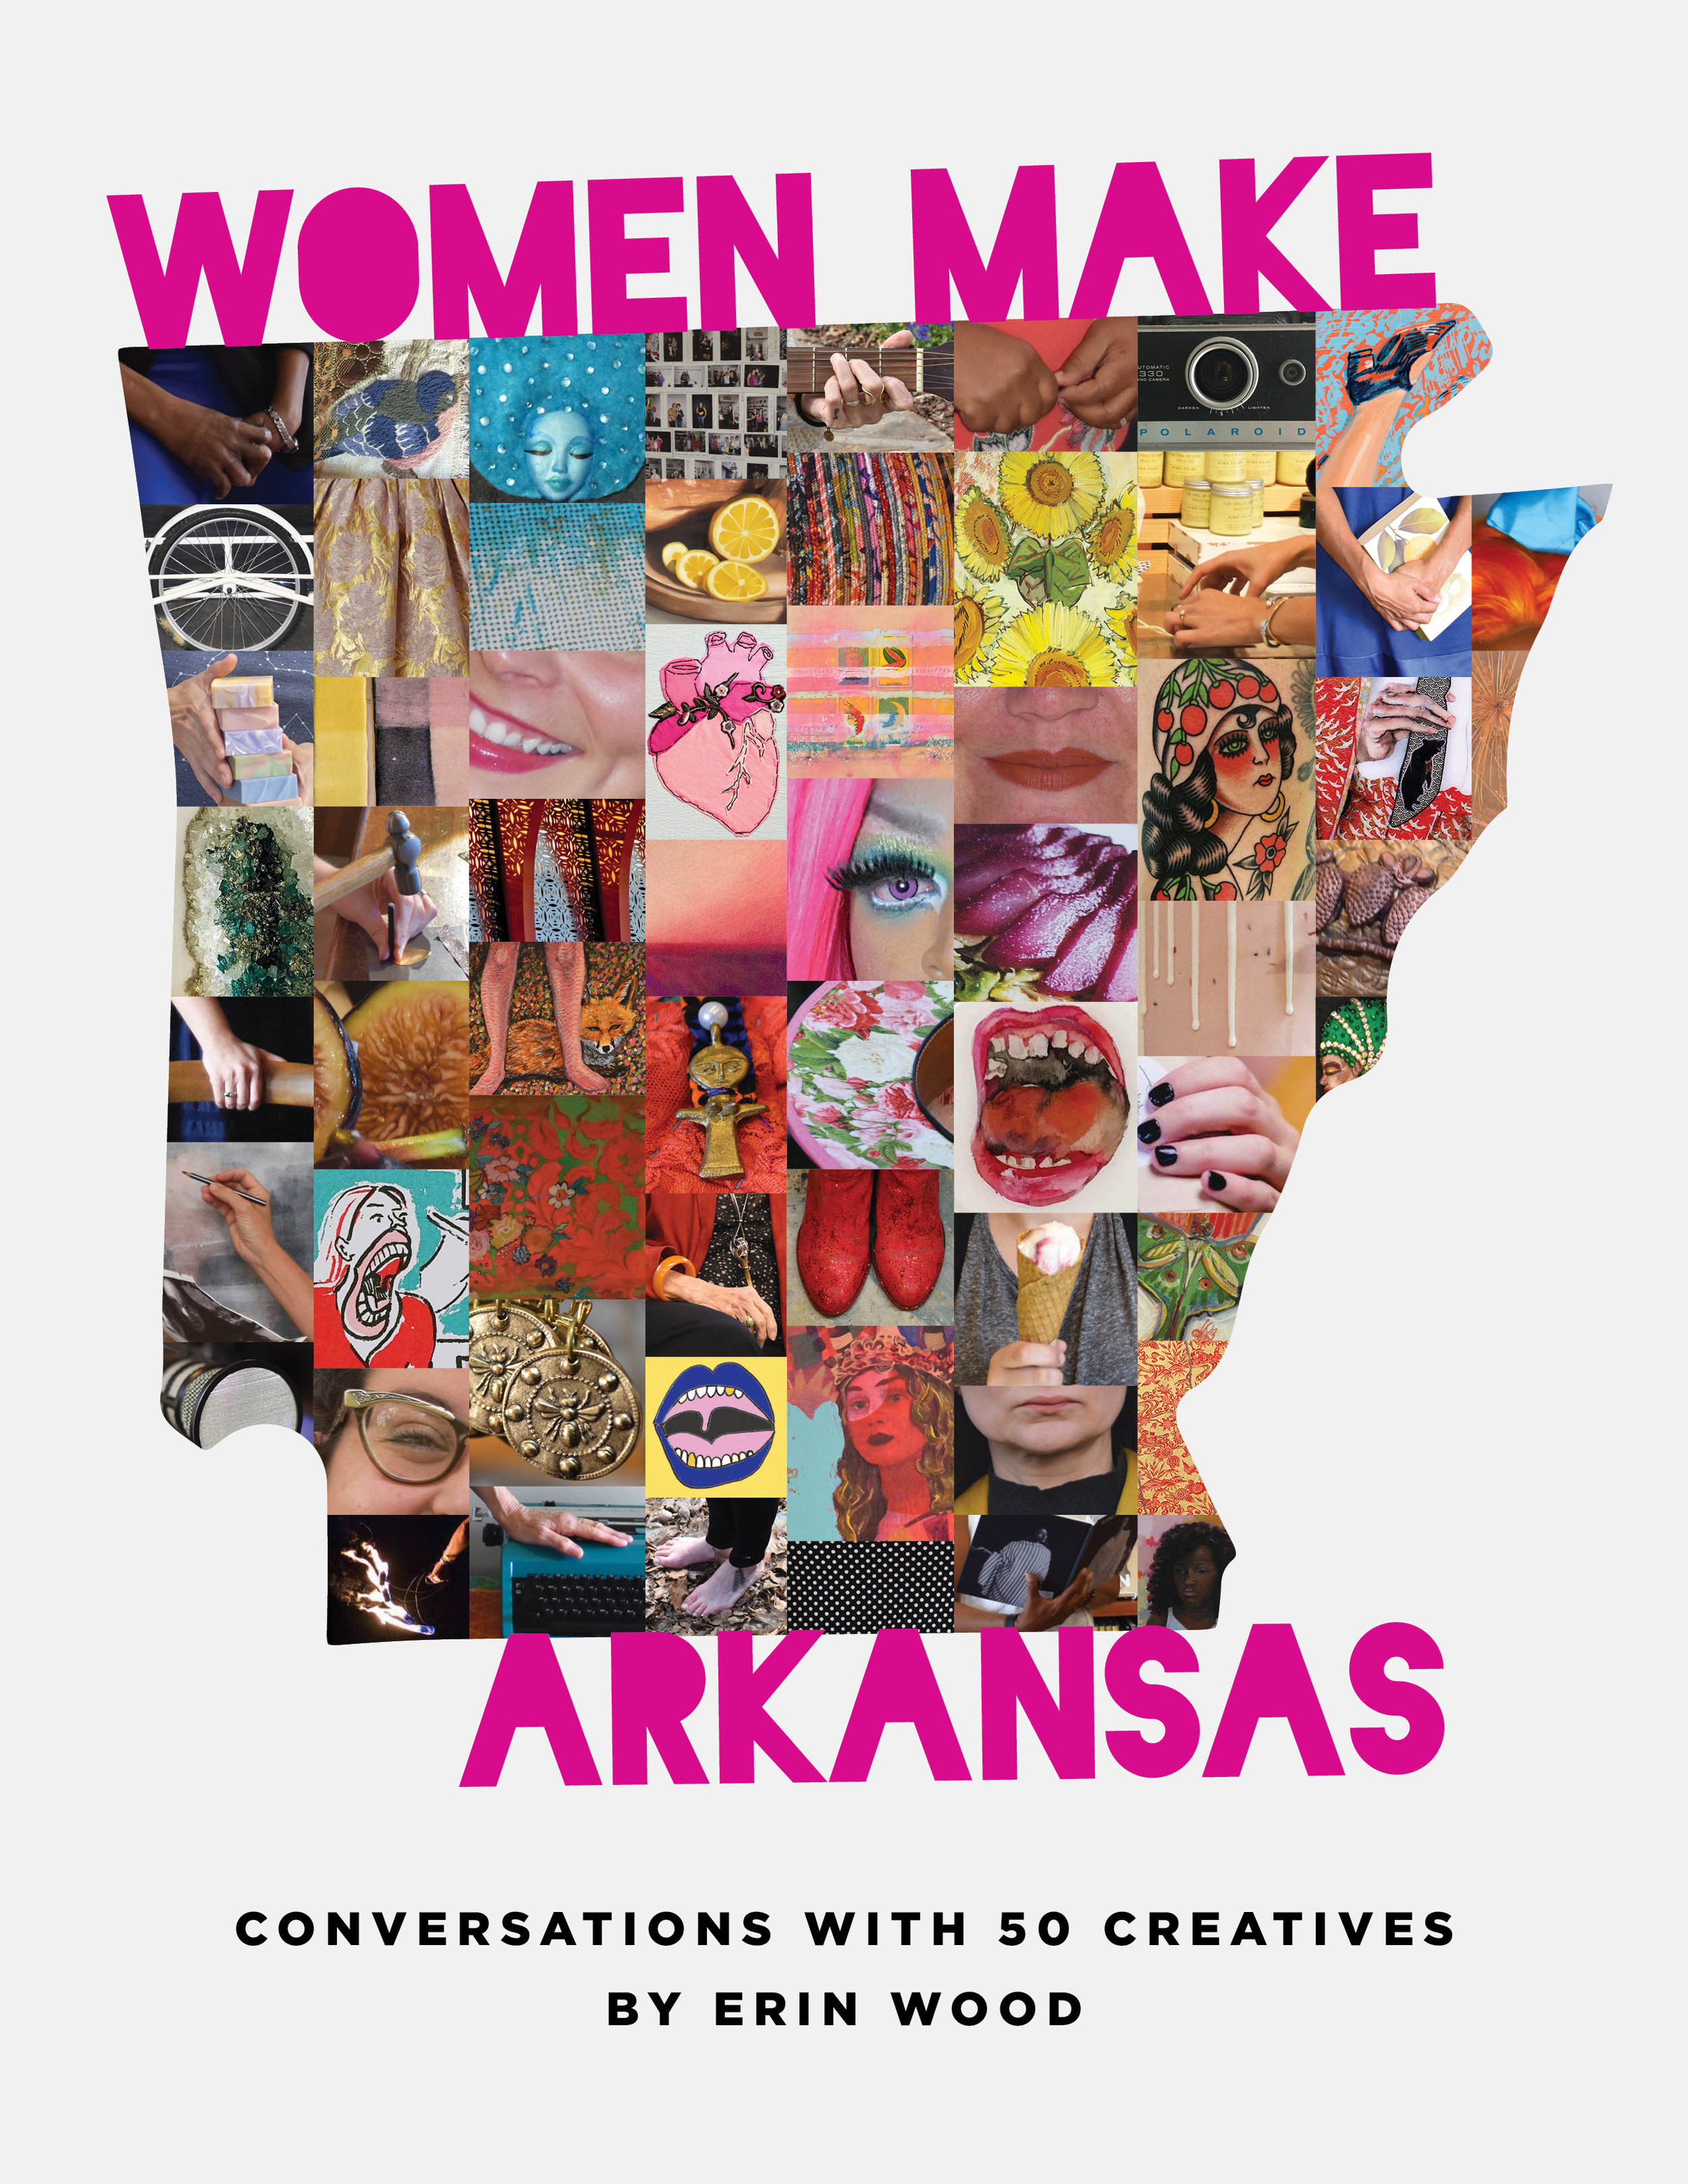 Women Make Arkansas COVER to LIT FEST.jpg